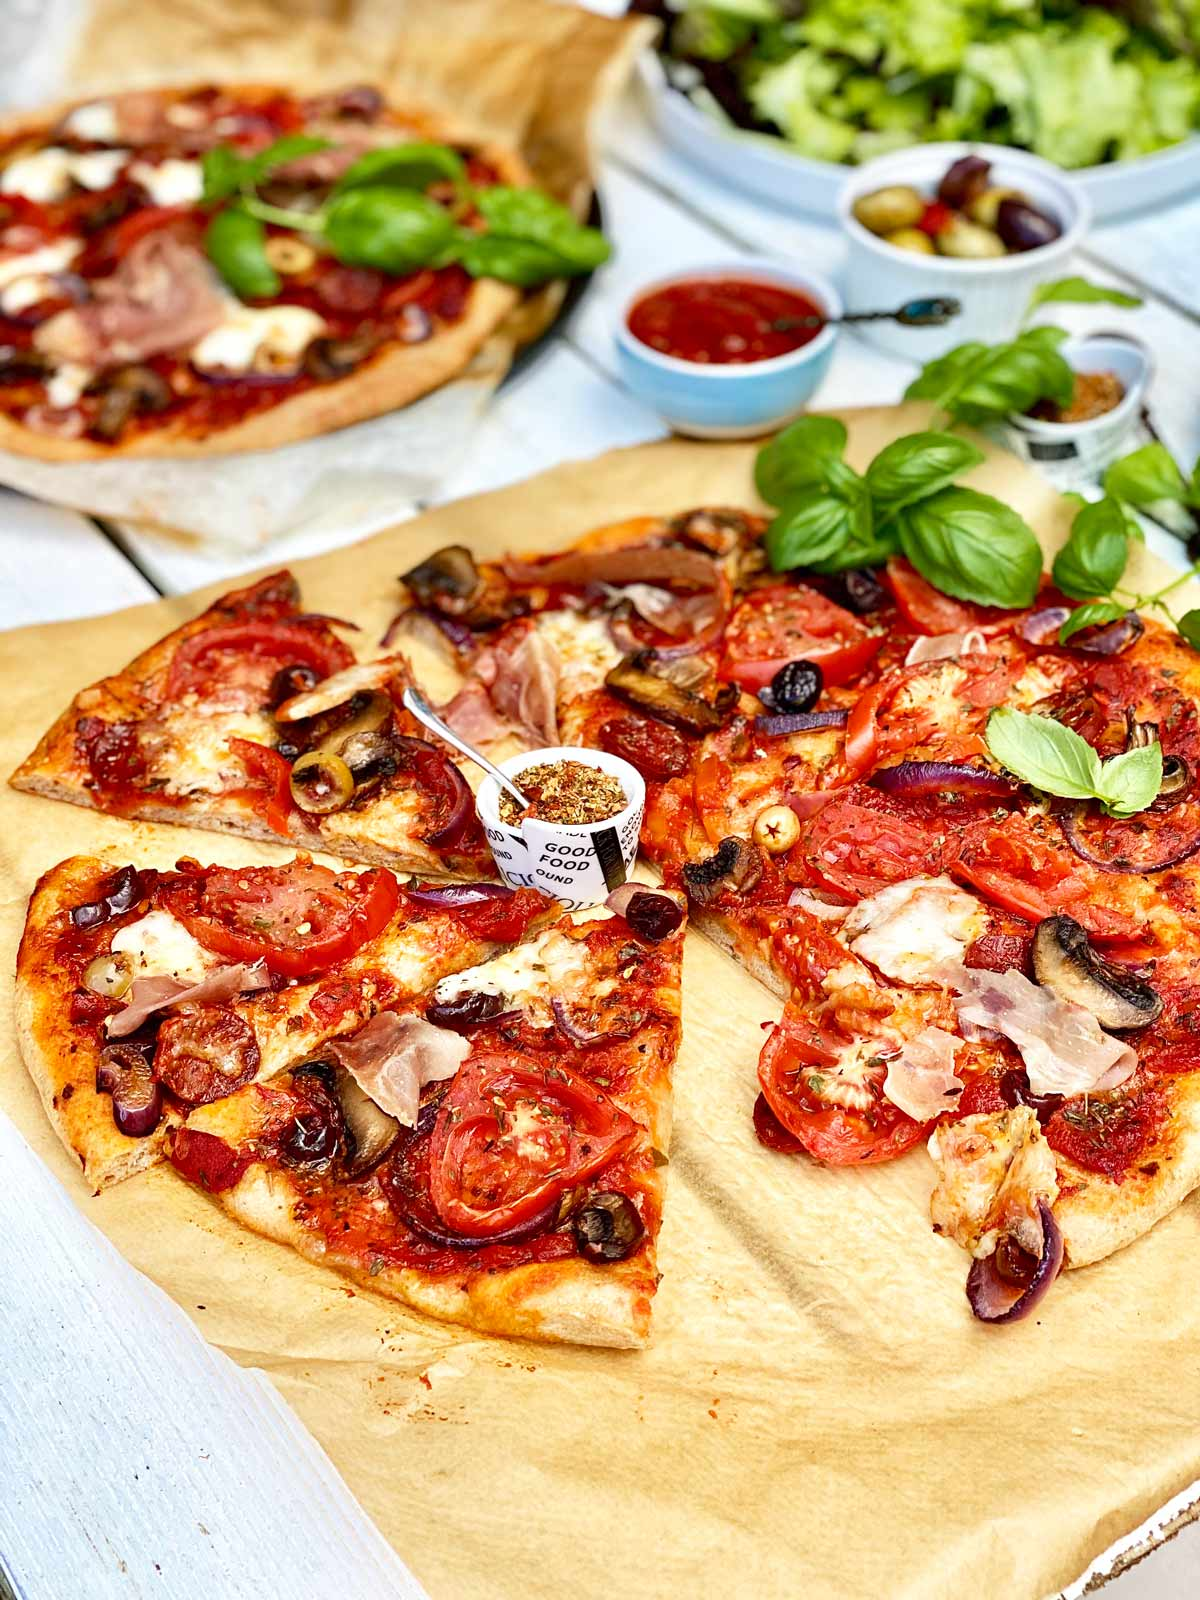 Homemade pizza on brown parchment paper without a slice